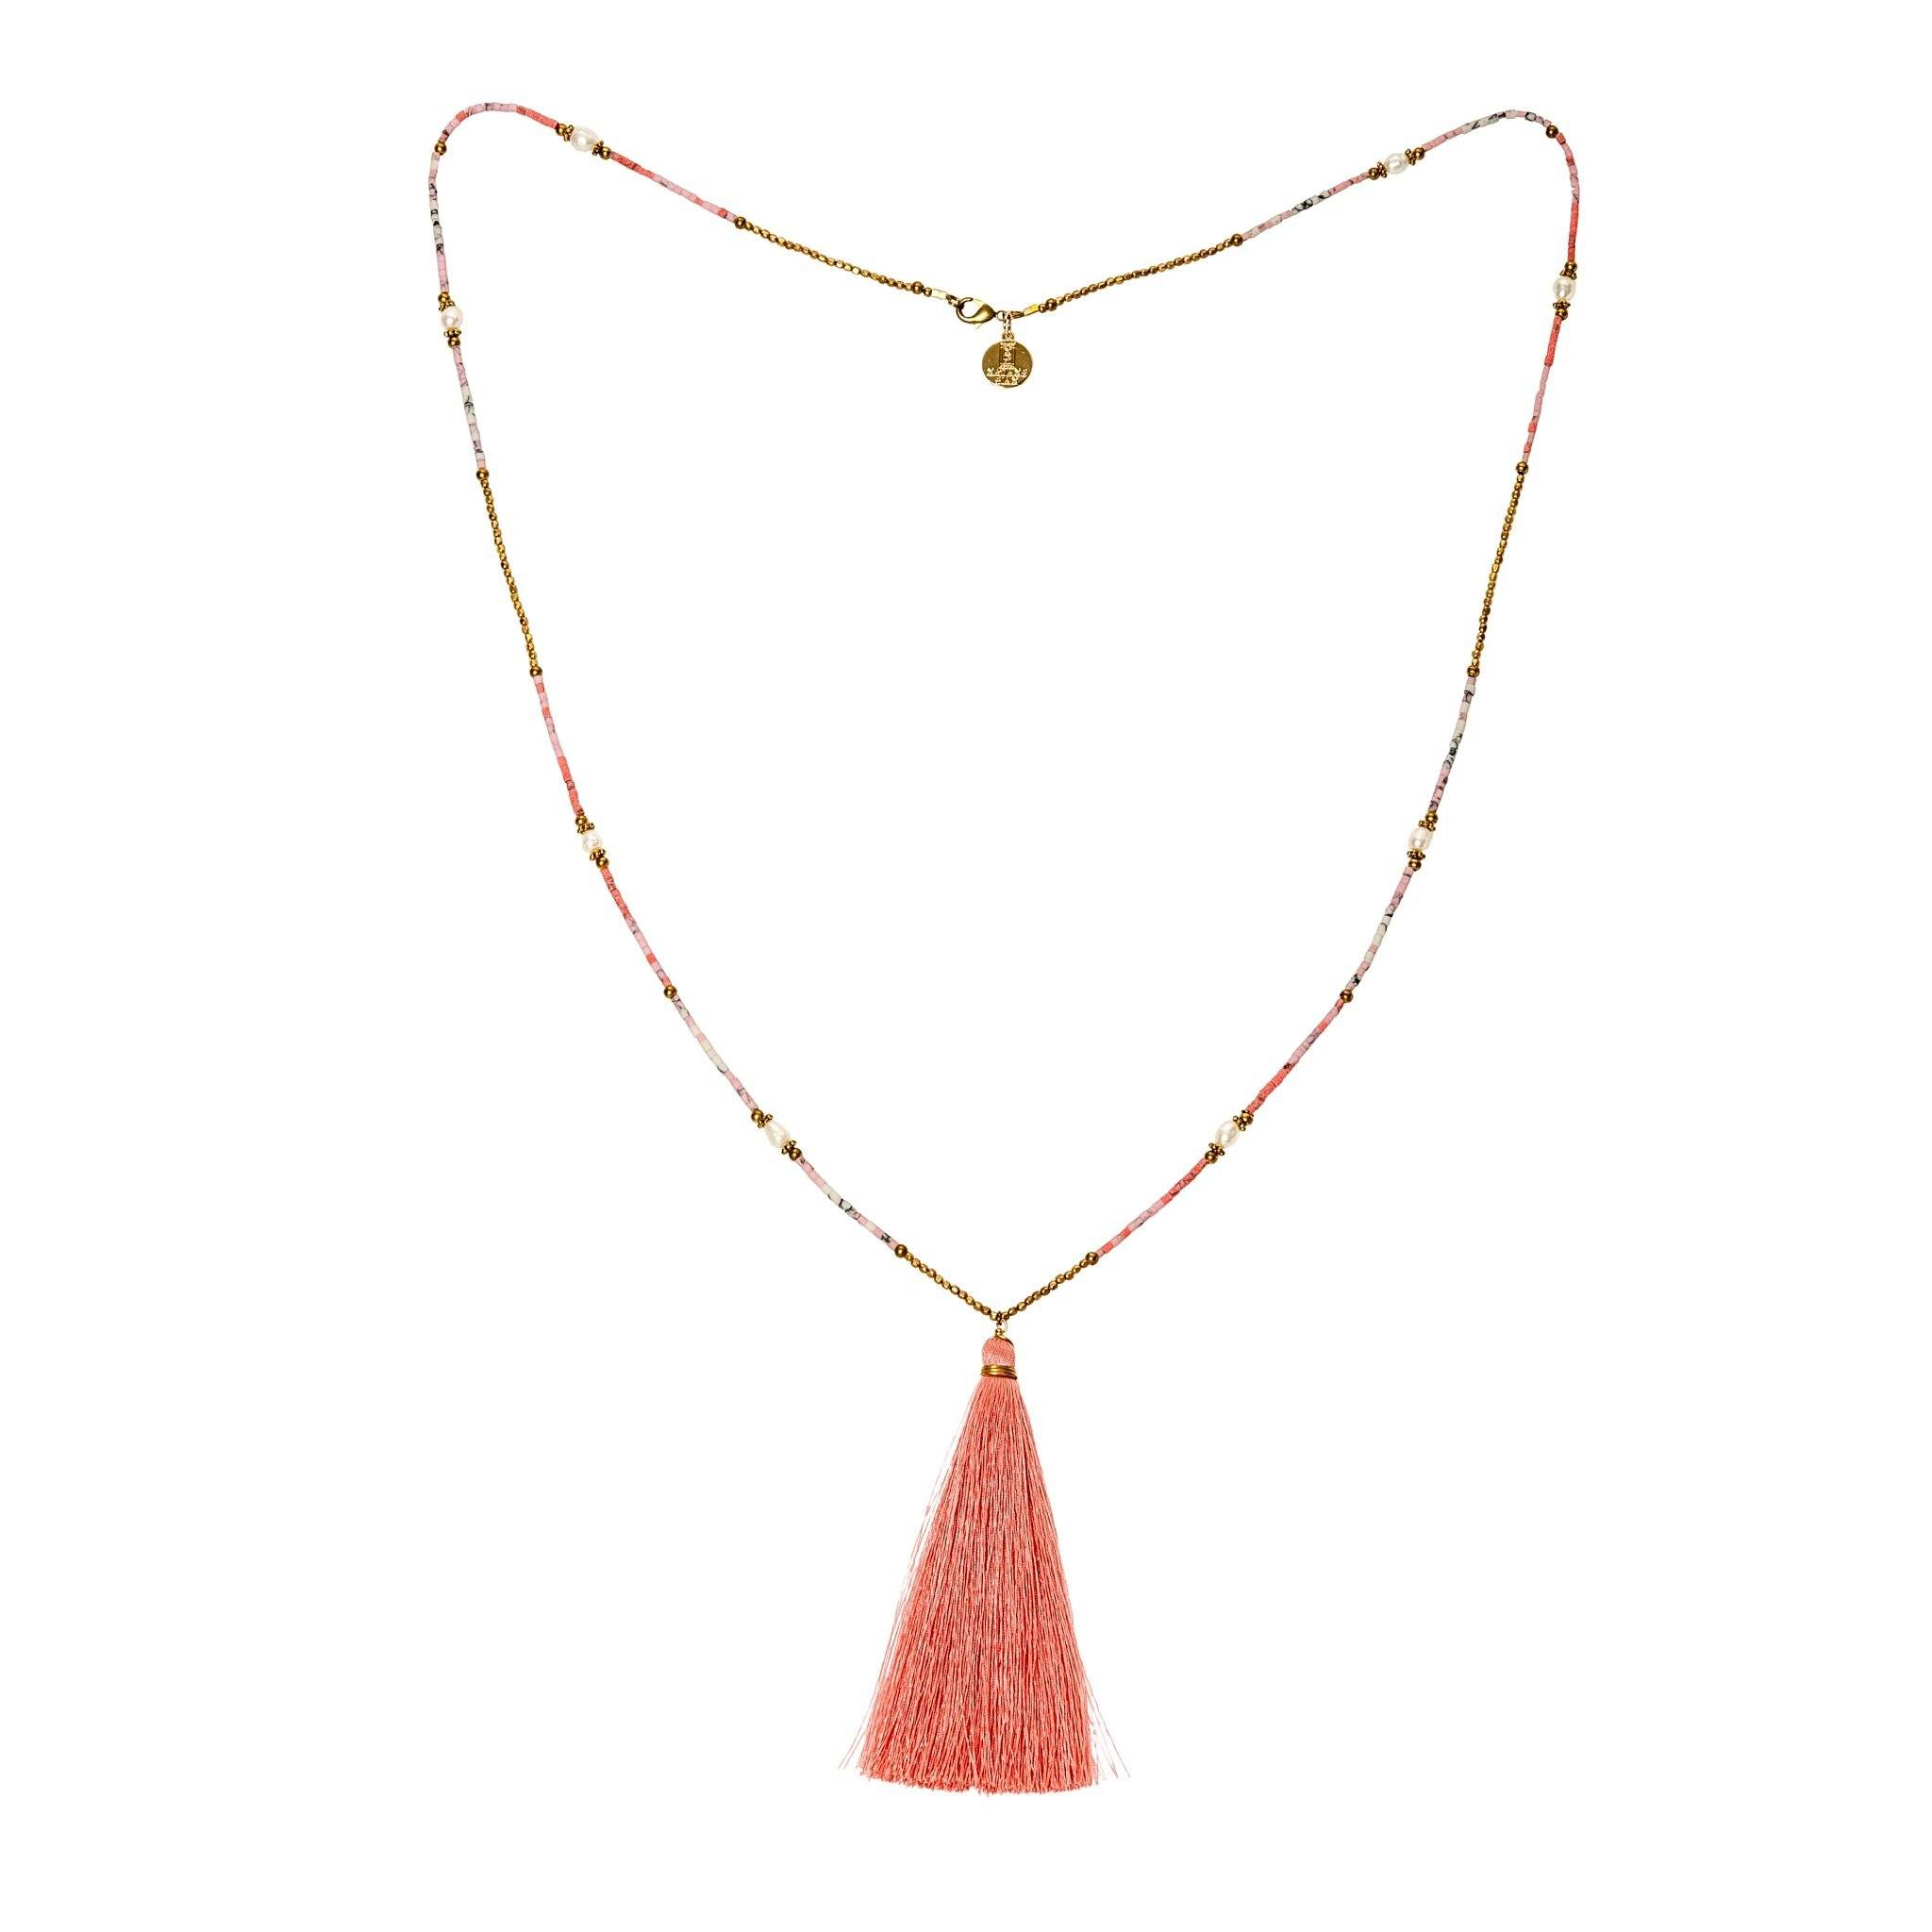 PLAYA pink tassel necklace - MadamSiam